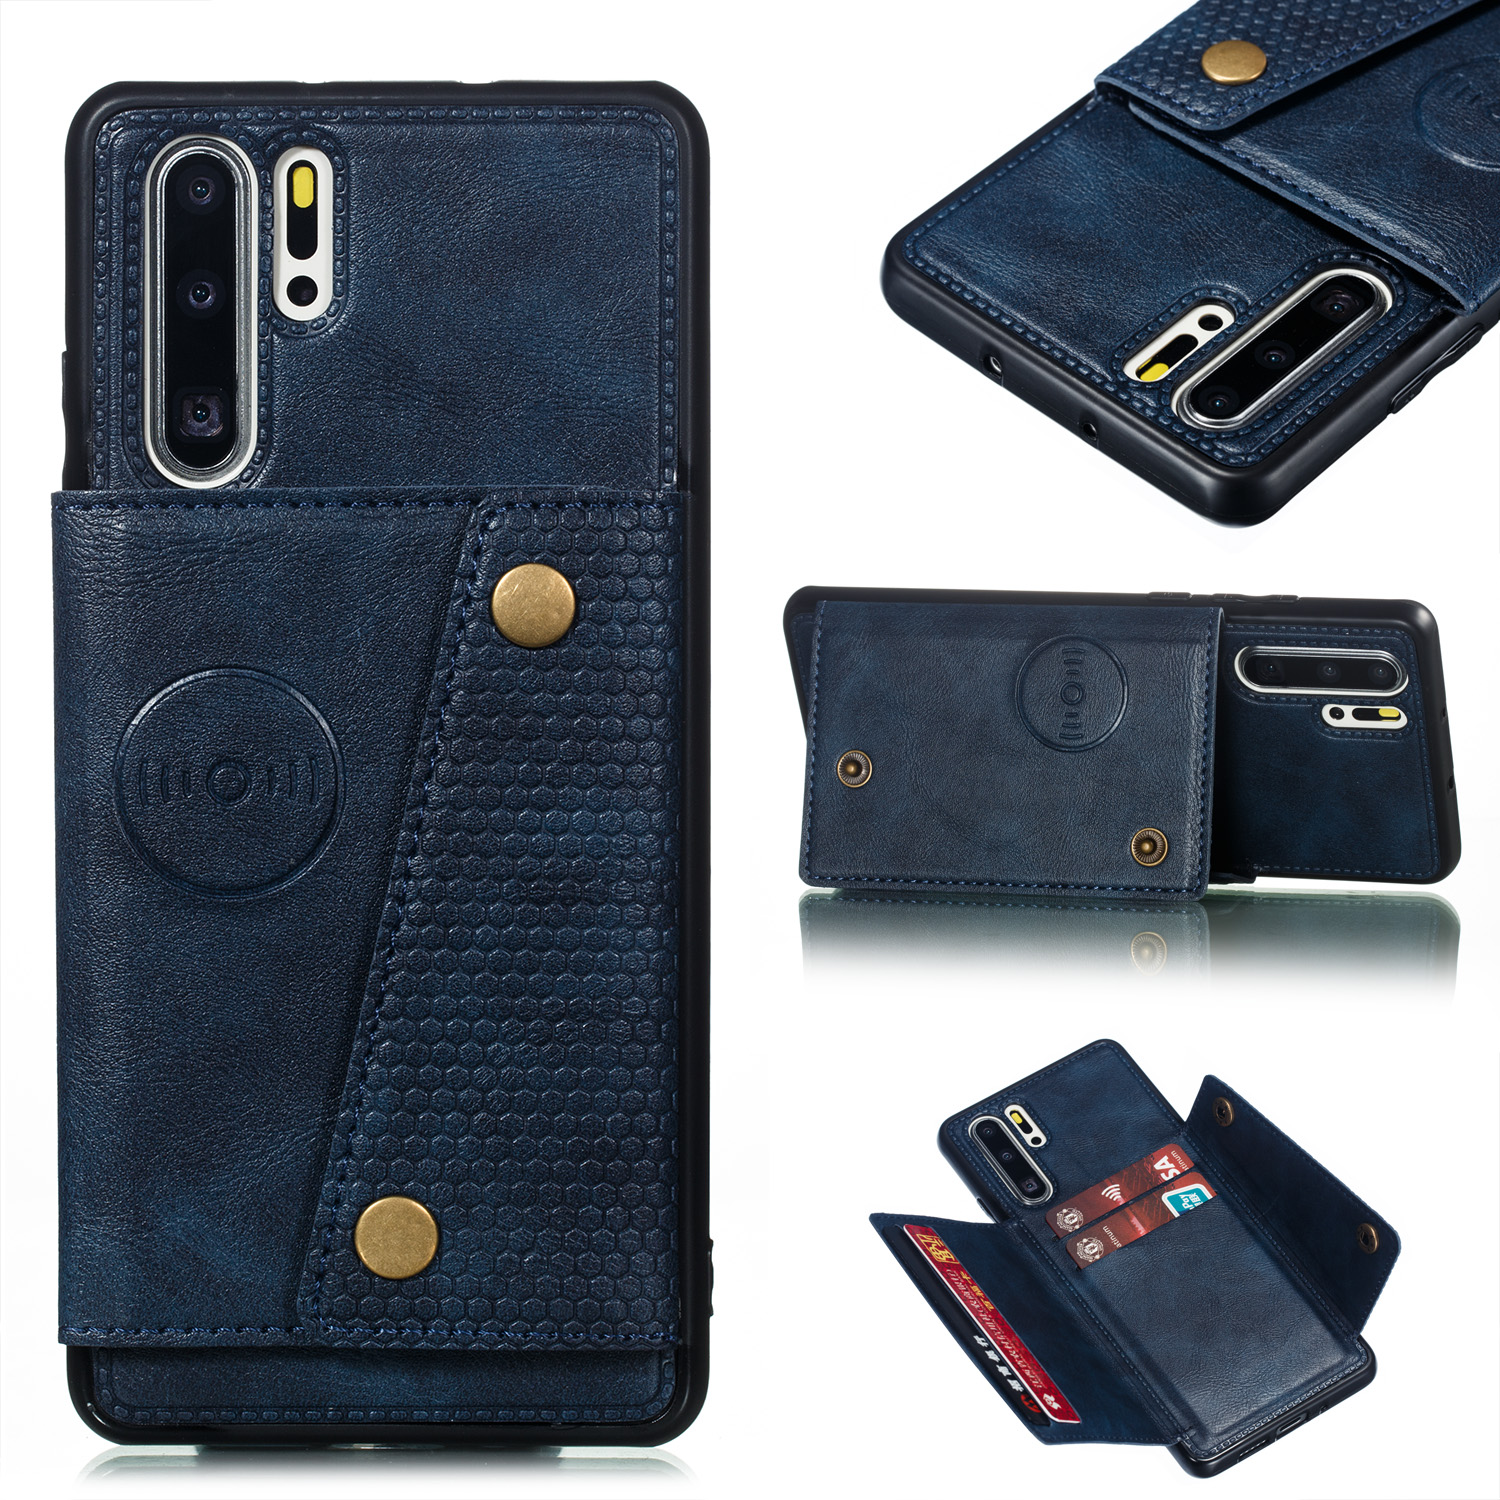 For Huawei P30 pro Double Buckle Non-slip Shockproof Cell Phone Case with Card Slot Bracket blue